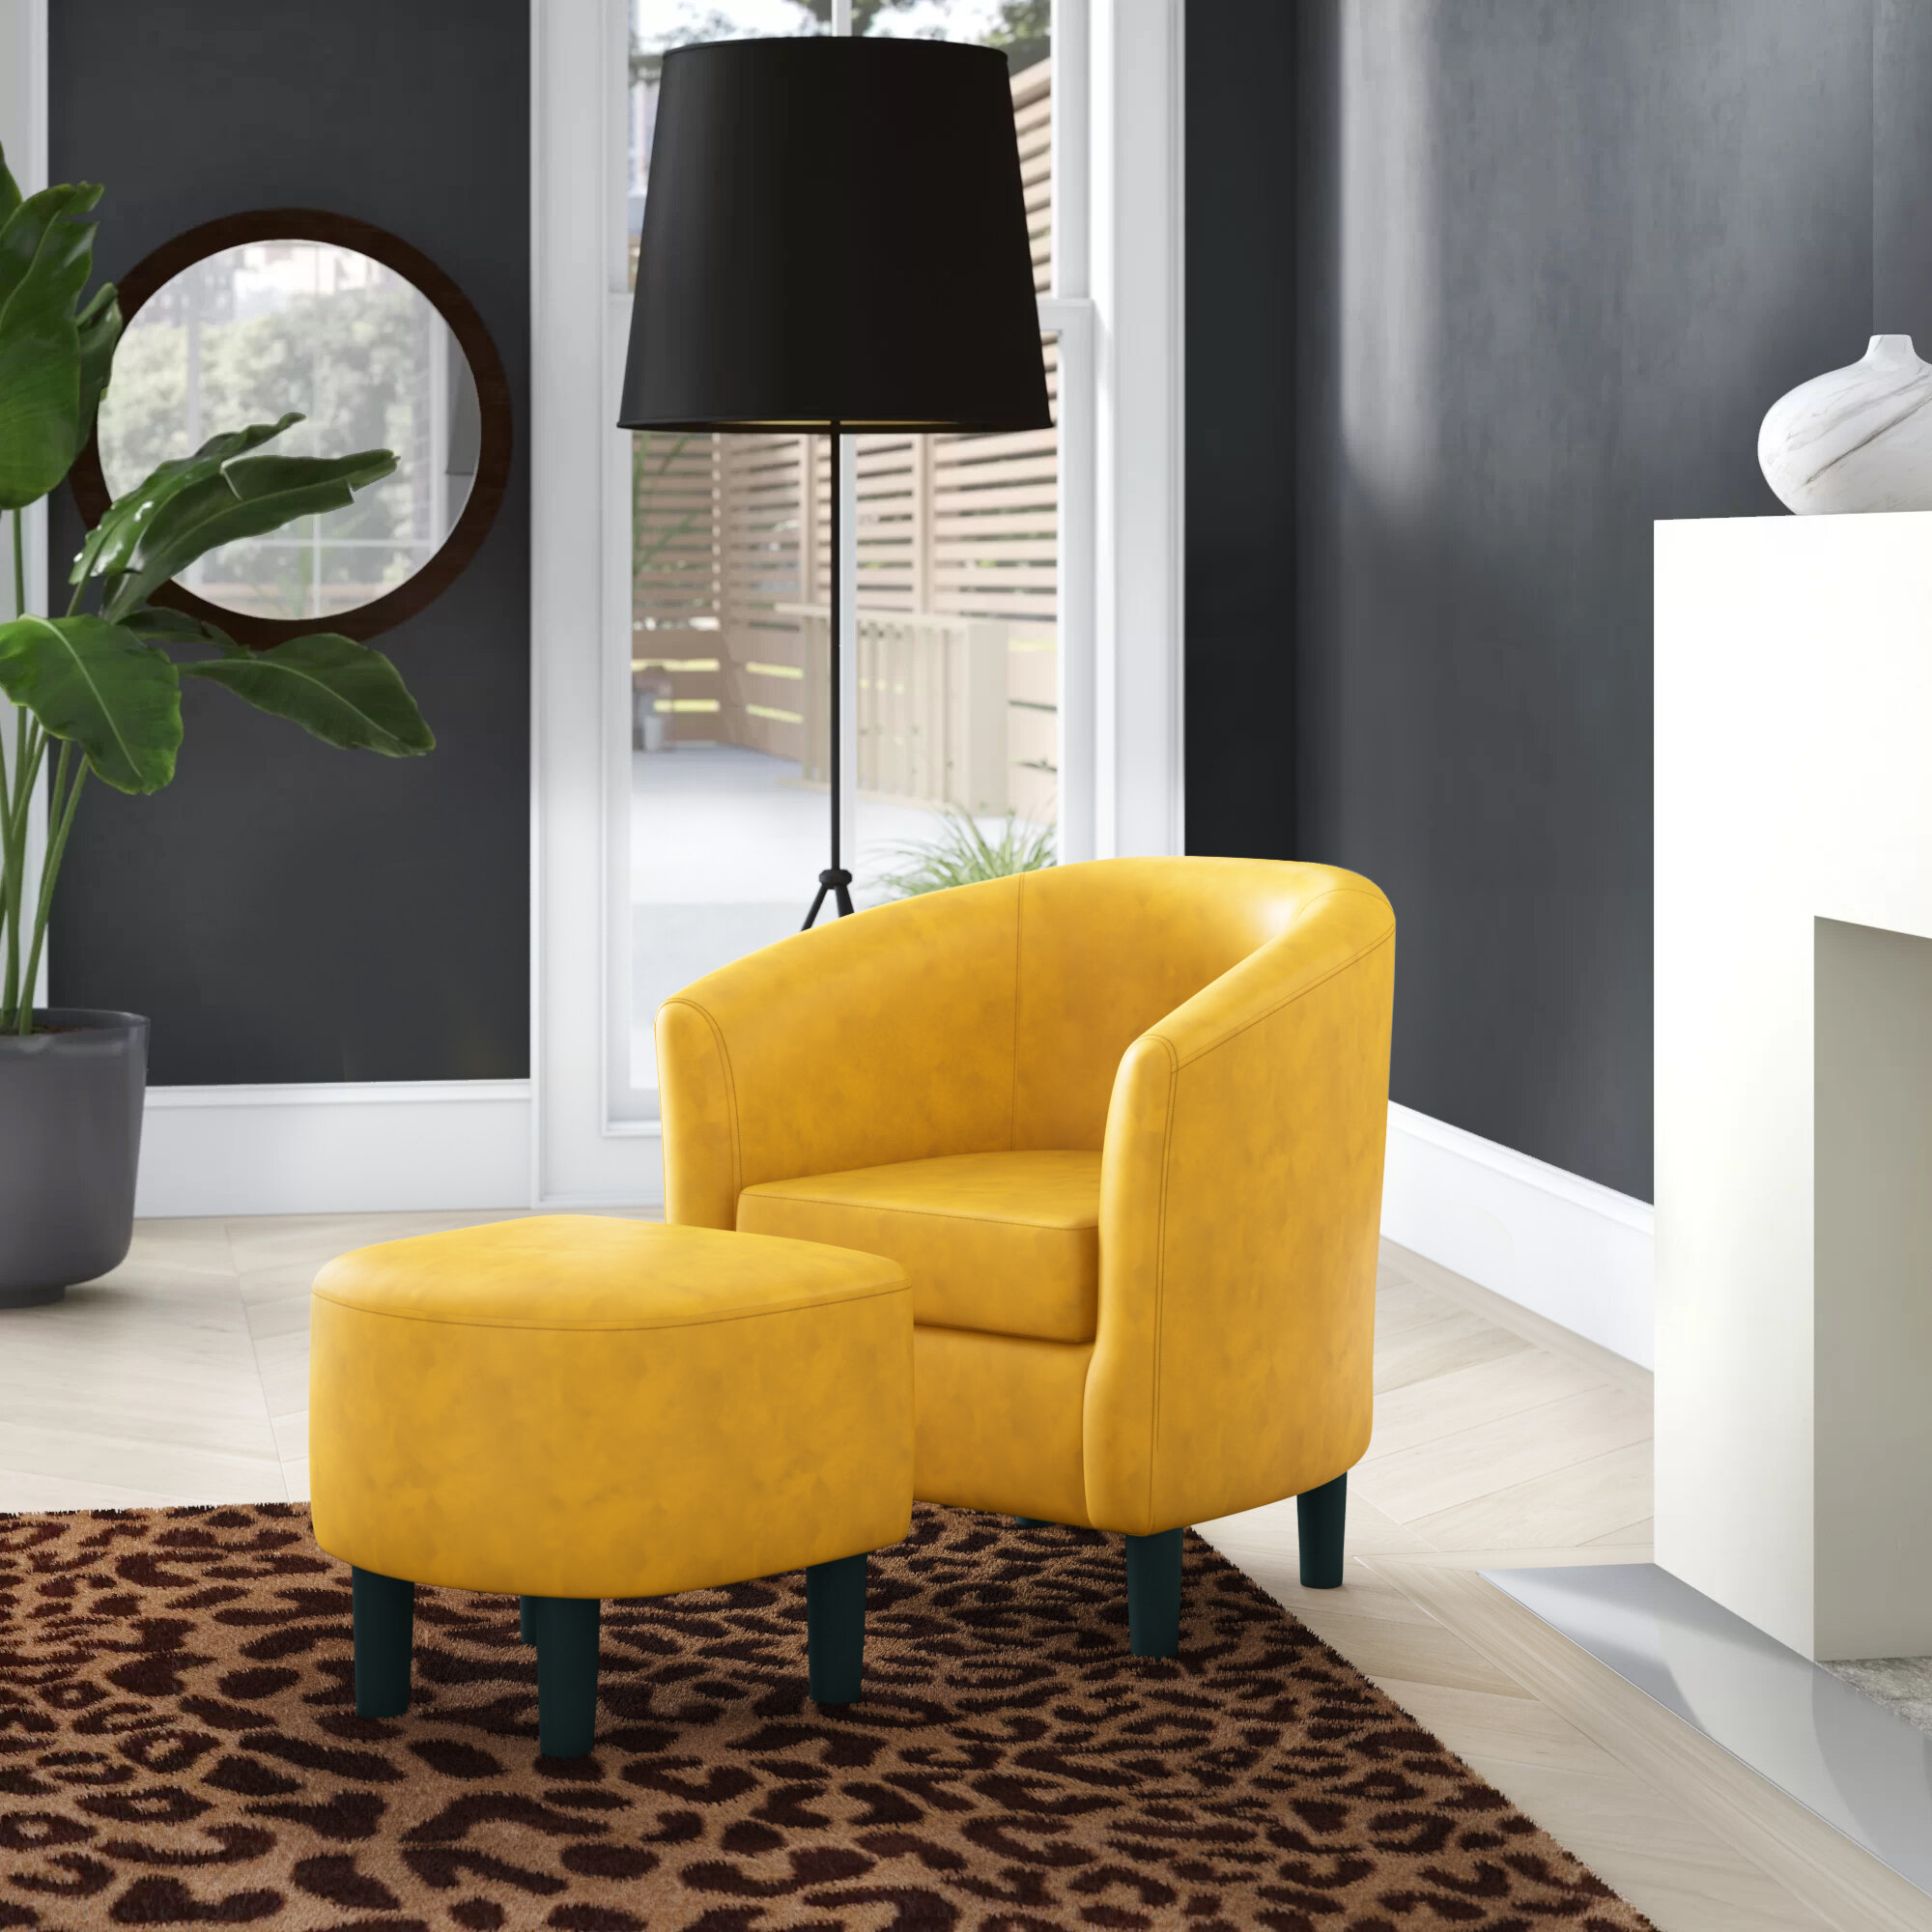 Ottoman Included Small Accent Chairs You'Ll Love In 2021 Throughout Harmon Cloud Barrel Chairs And Ottoman (View 4 of 15)